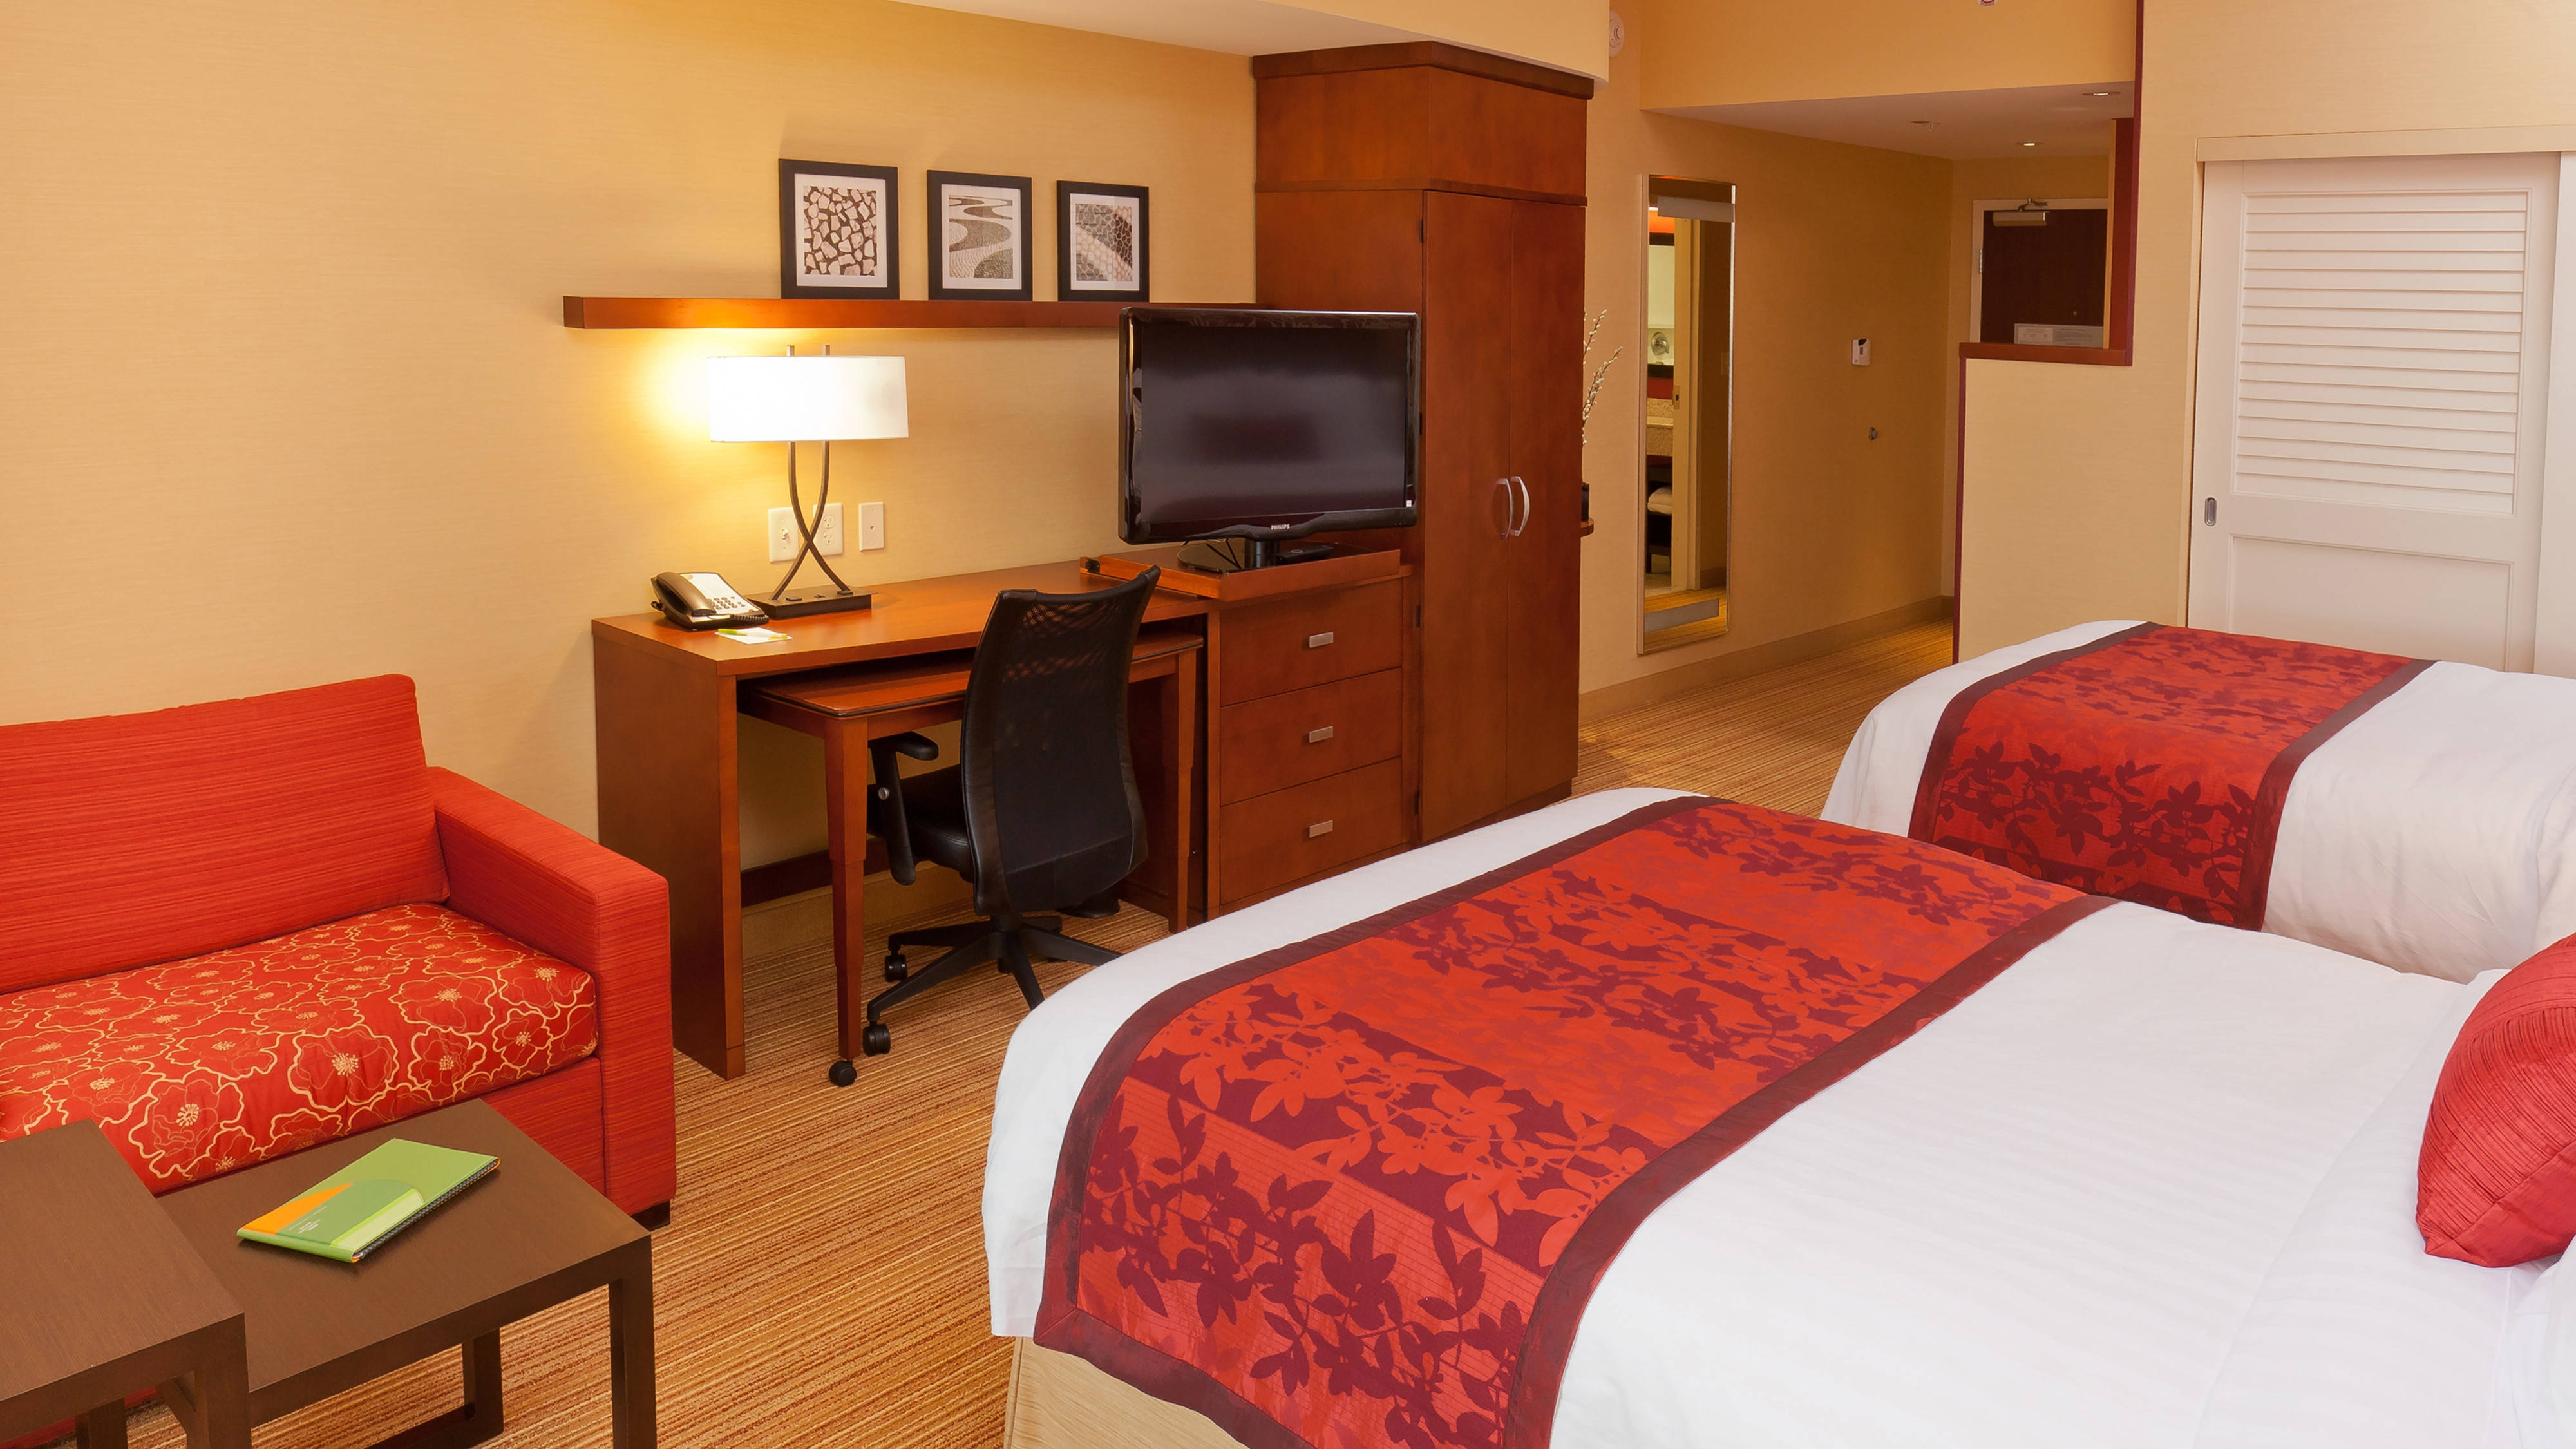 Buffalo hotel room with 2 beds